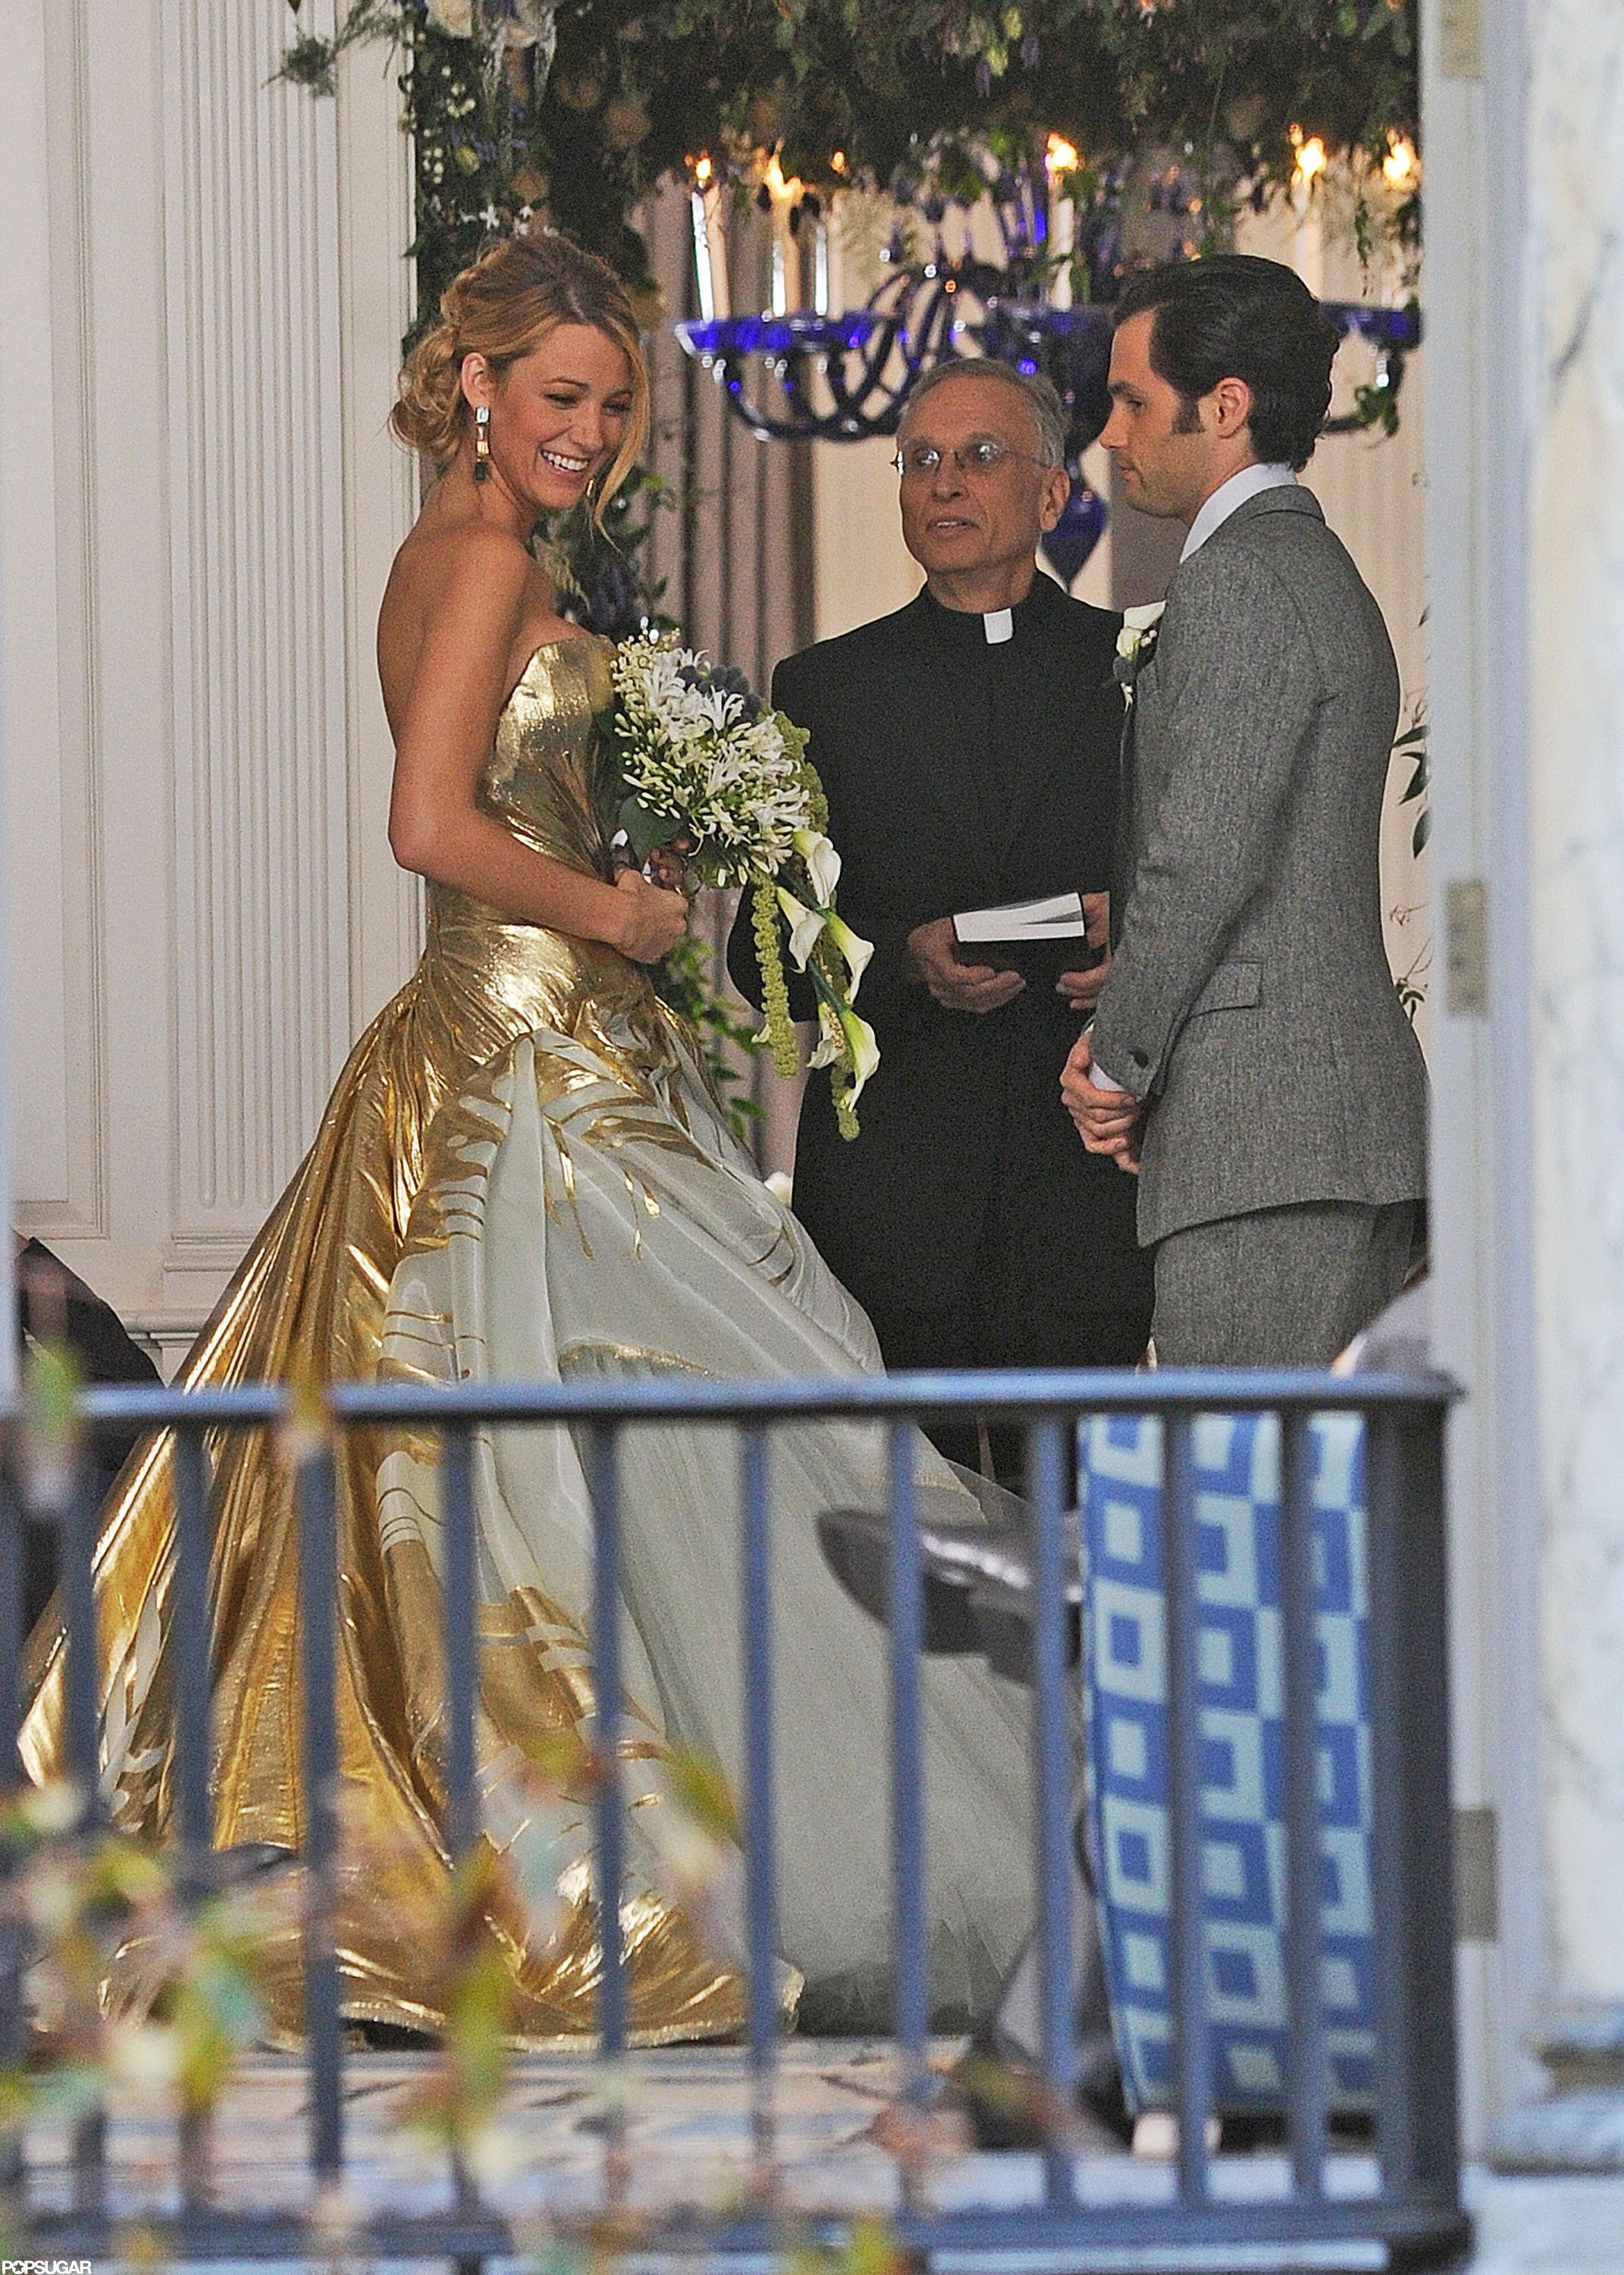 See Blake Lively S Wedding Dress On Gossip Girl Gossip Girl Wedding Blake Lively Wedding Dress Gossip Girl Fashion